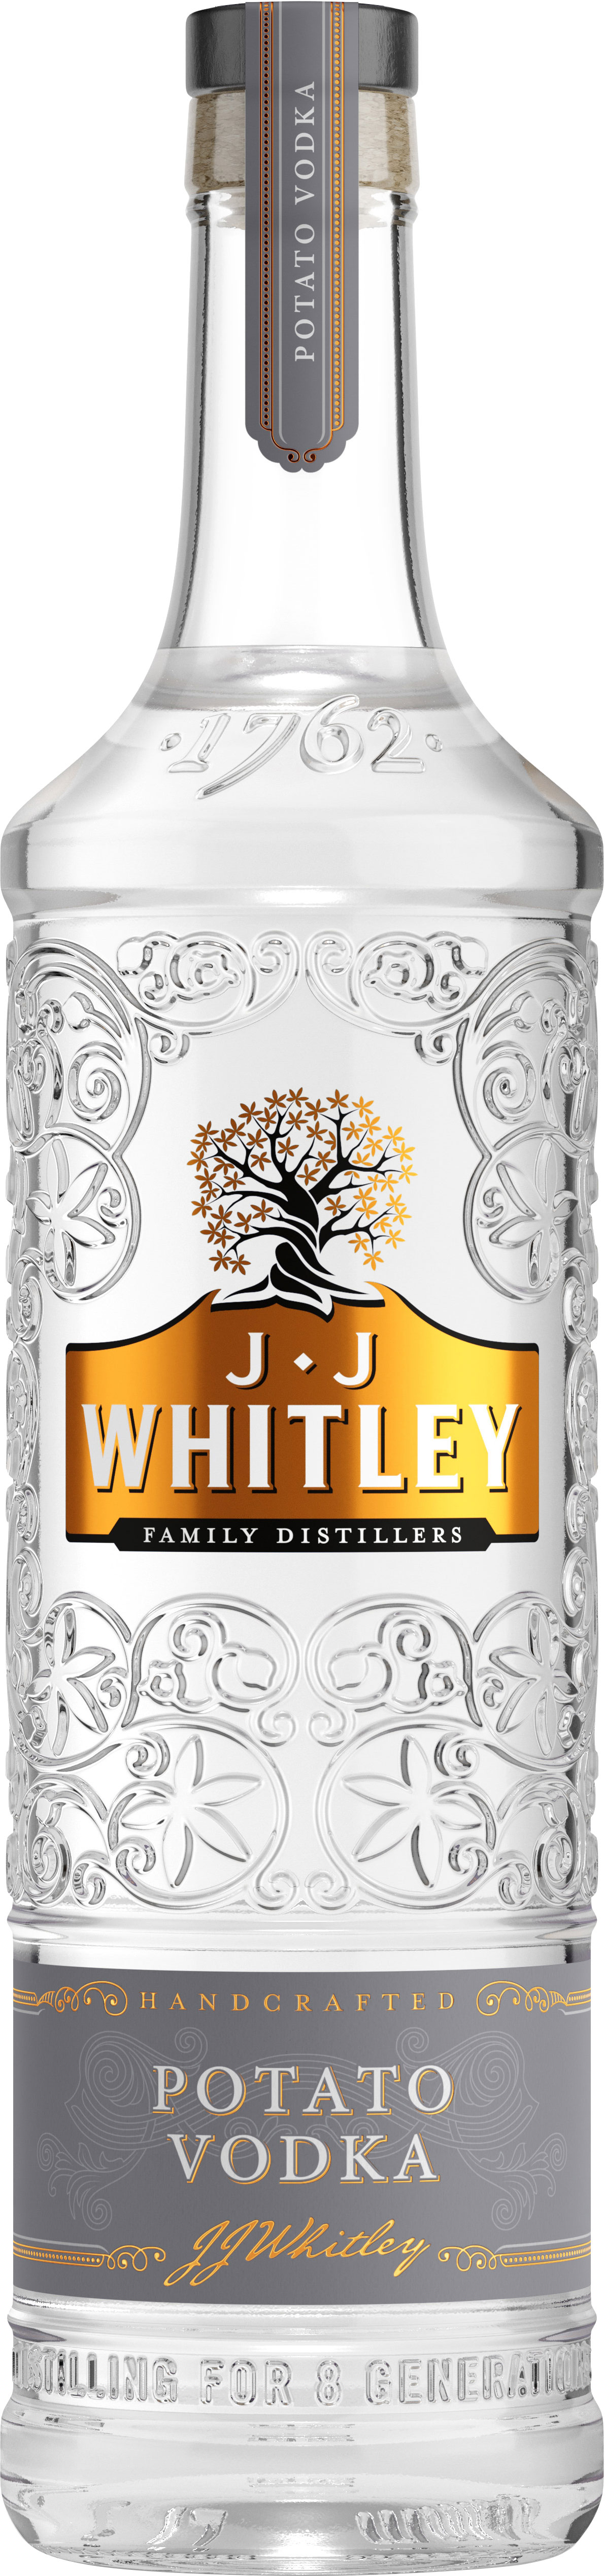 JJ Whitley  Potato Vodka 70cl Bottle